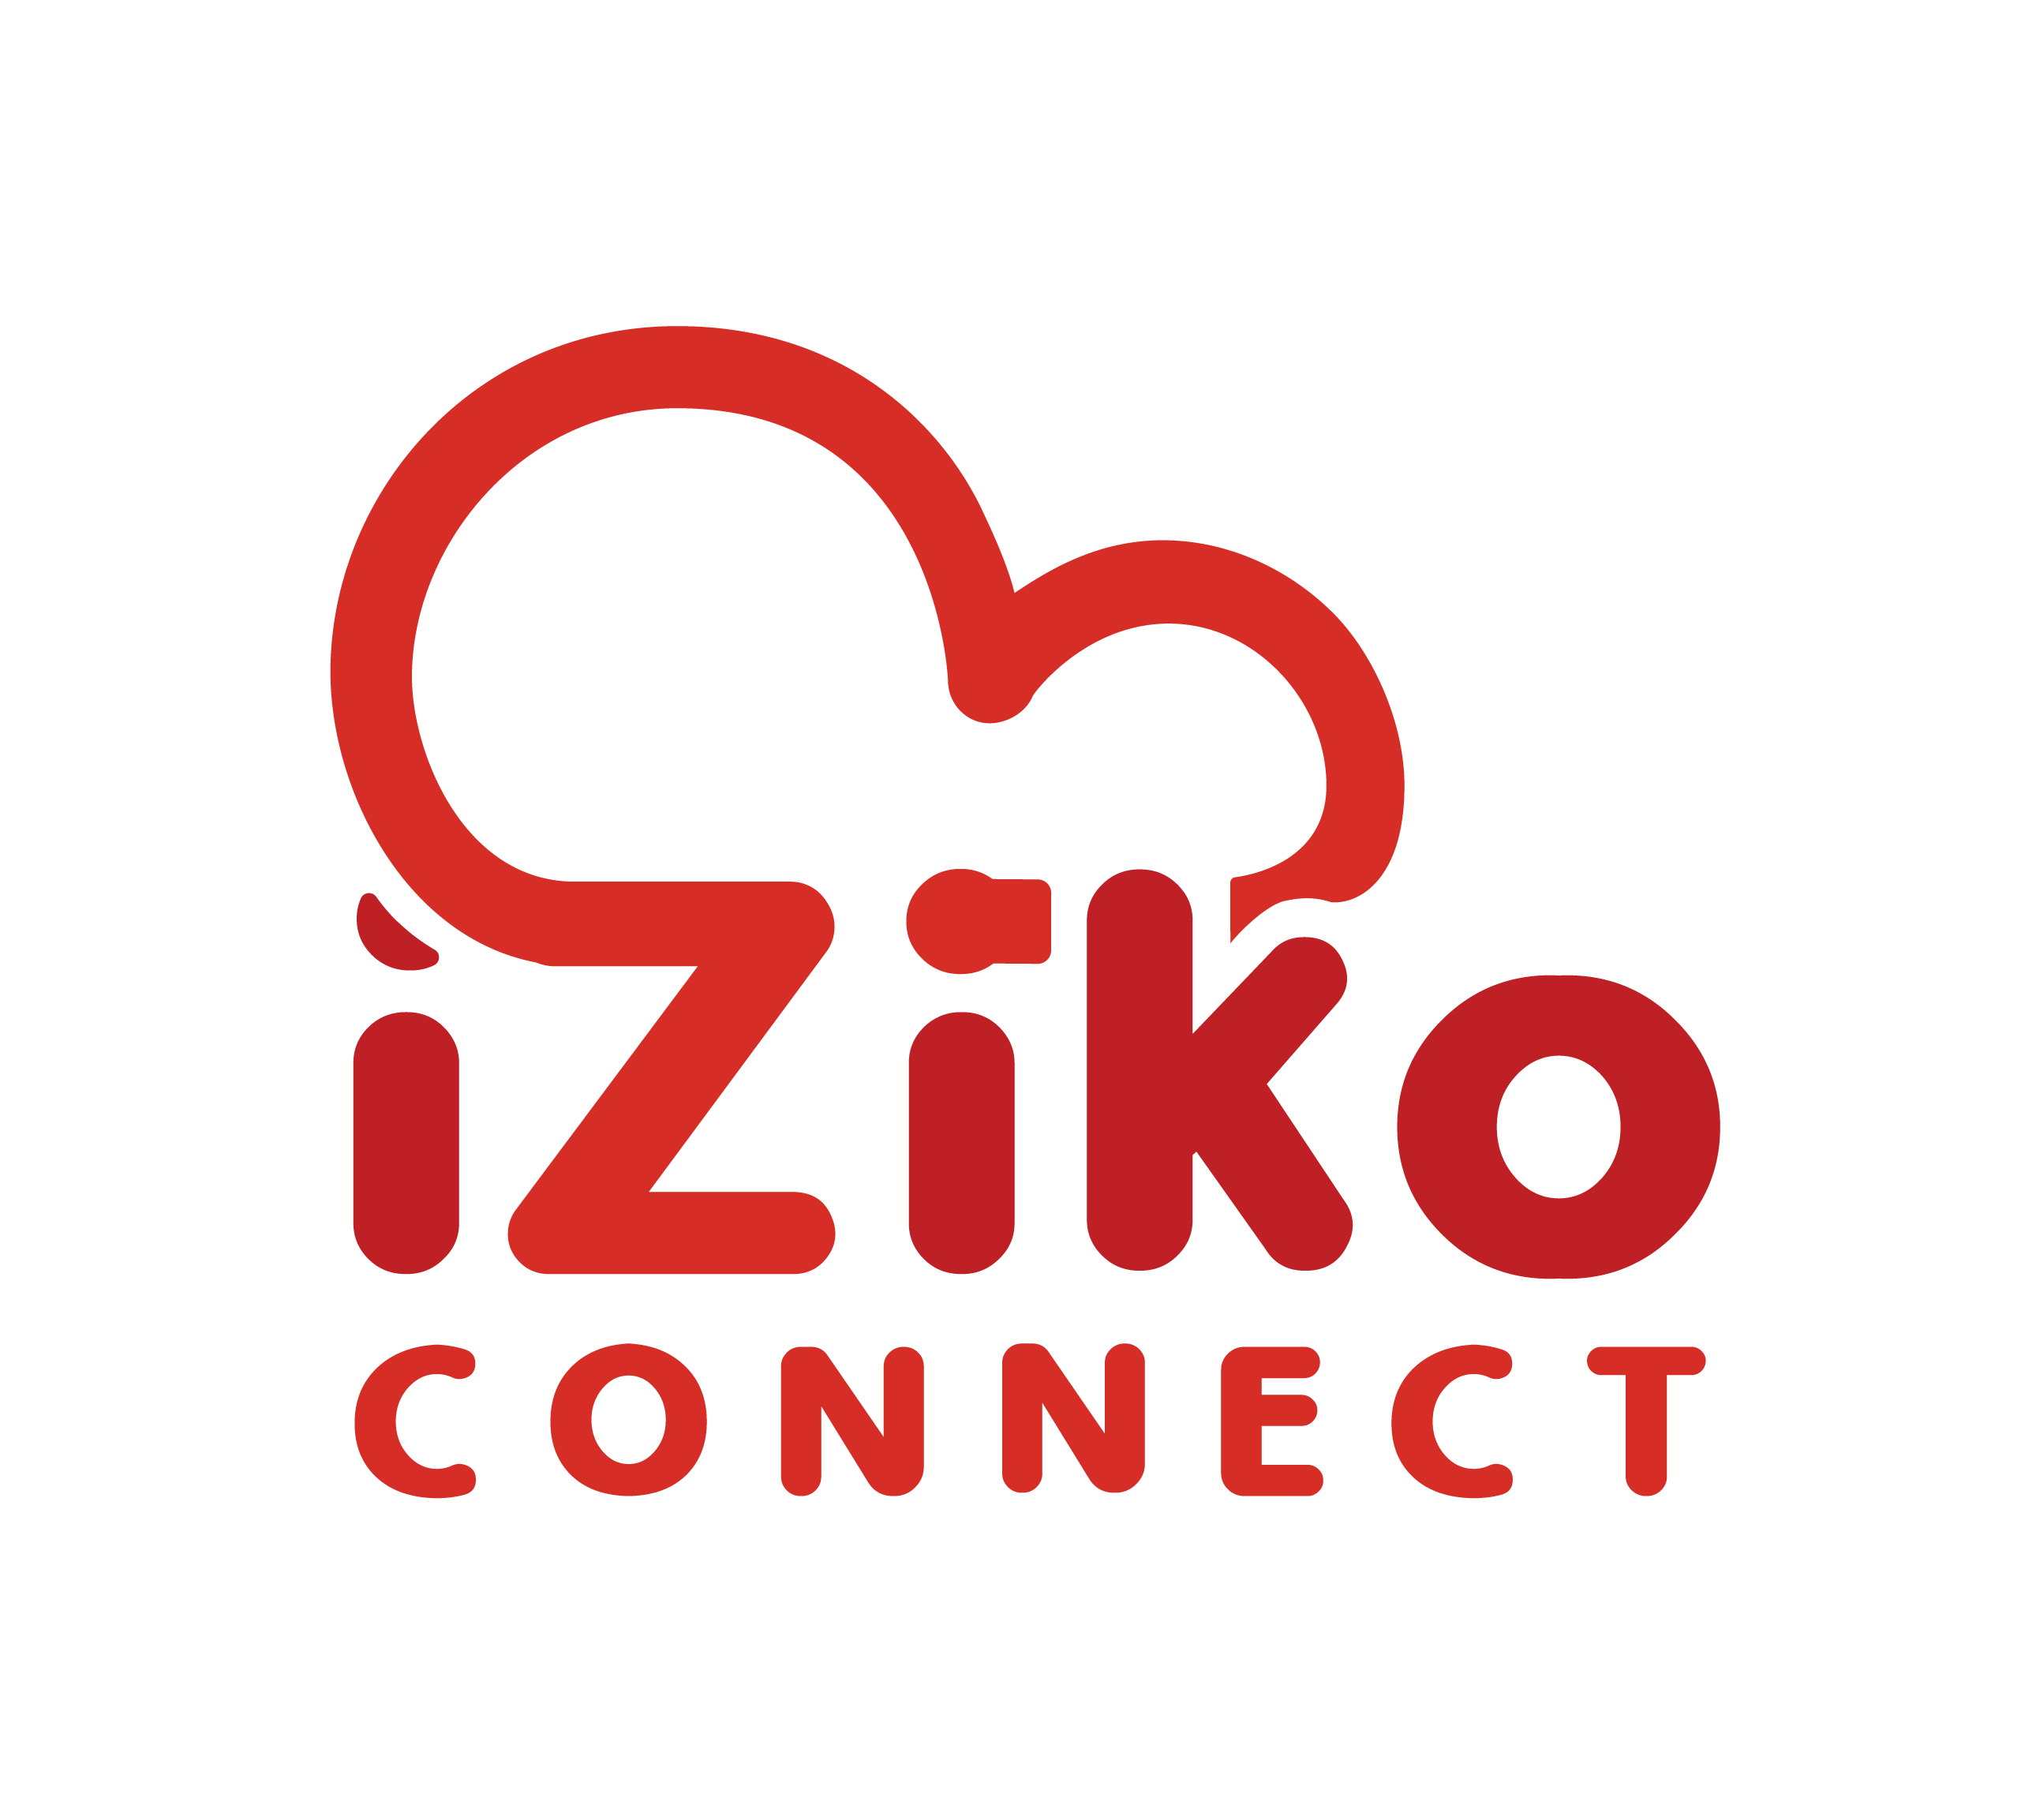 Iziko Connect